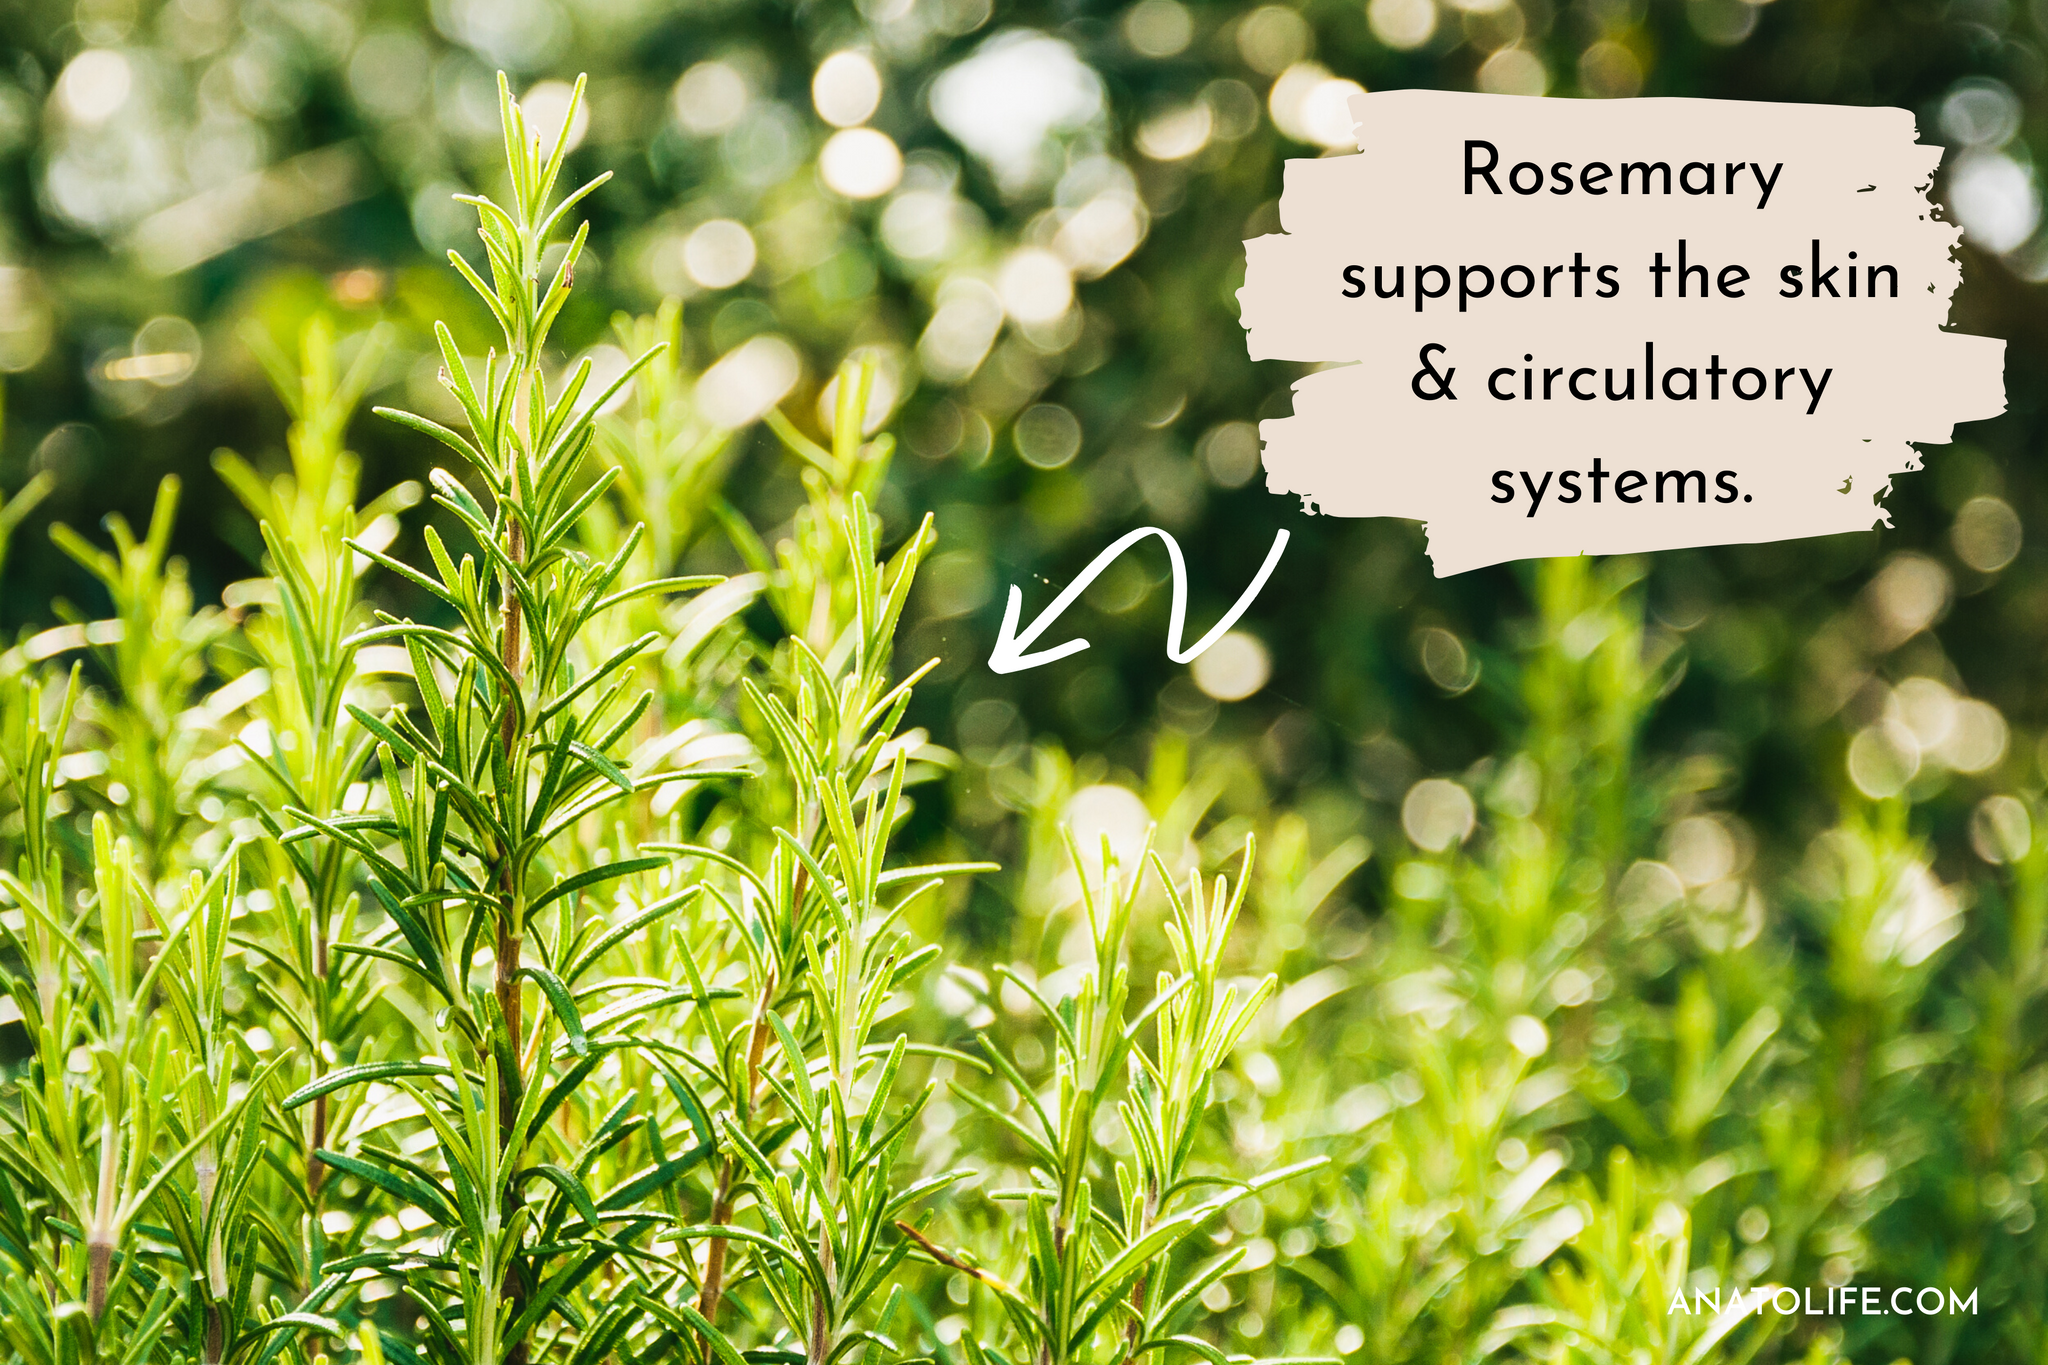 Rosemary supports the skin & circulatory systems